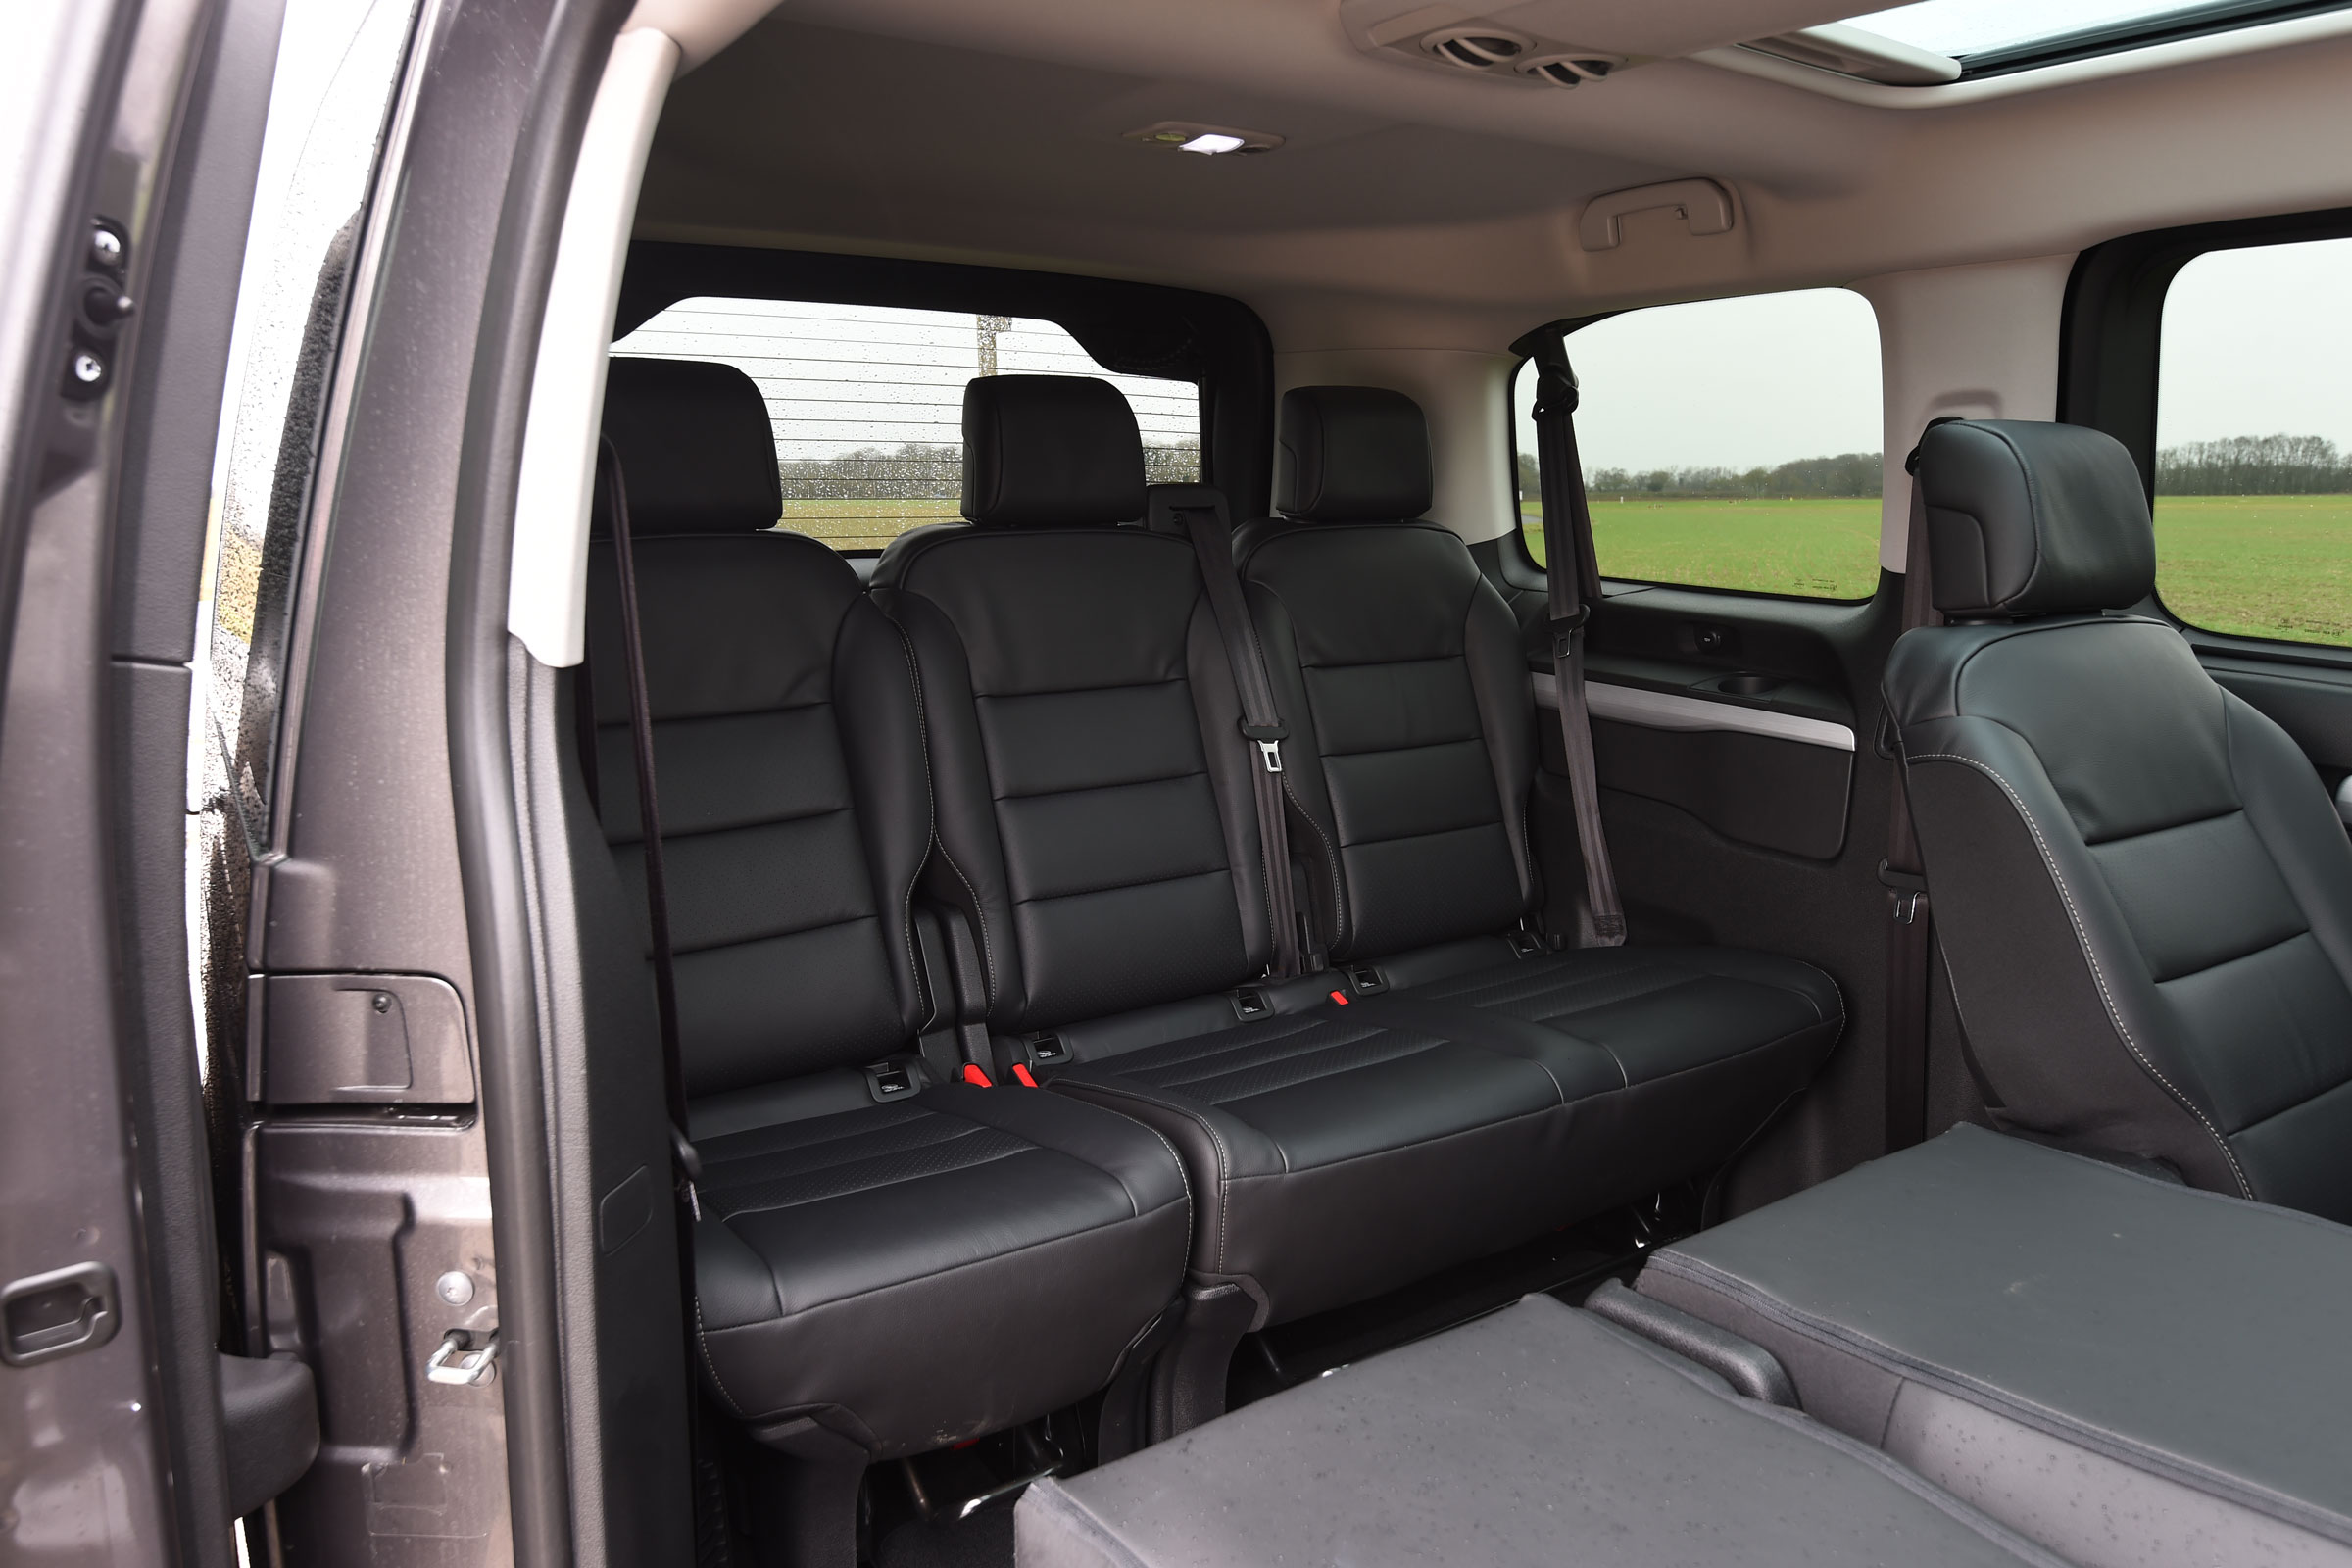 2017 Peugeot Traveller Allure Interior Seats Rear 3rd Row (Photo 9 of 13)